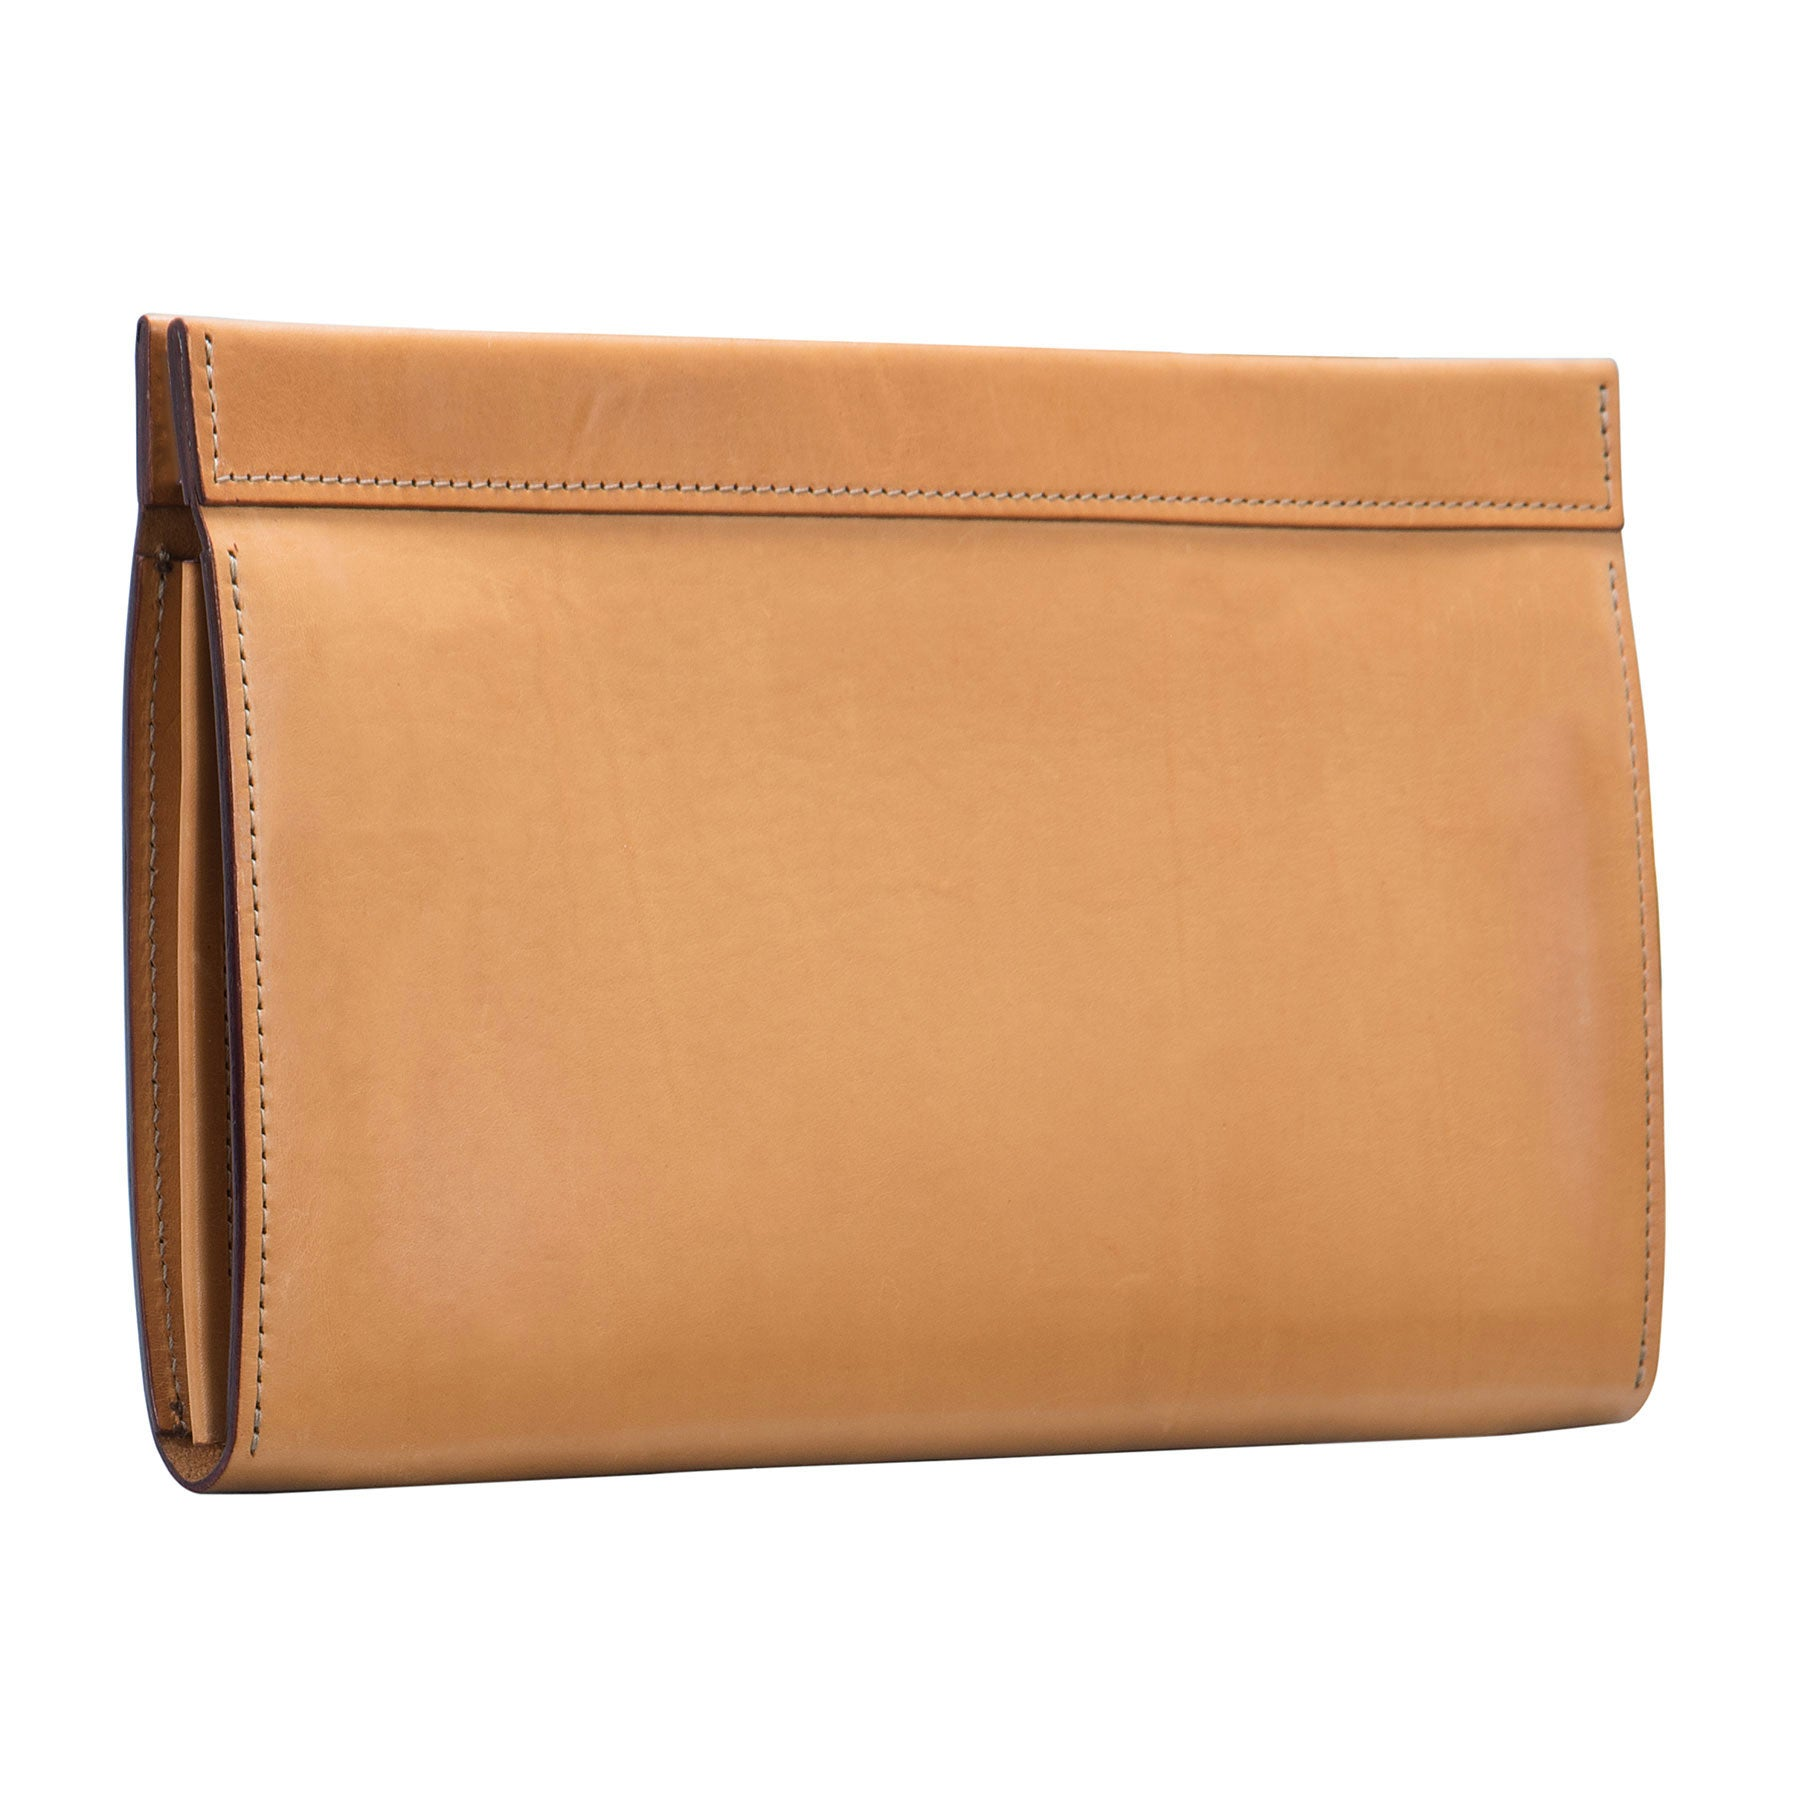 Glaser Designs Clutch Portfolio. Hand burnished Natural vegetable tanned leather. Magnetic closure. Made to-measure, custom sizes.